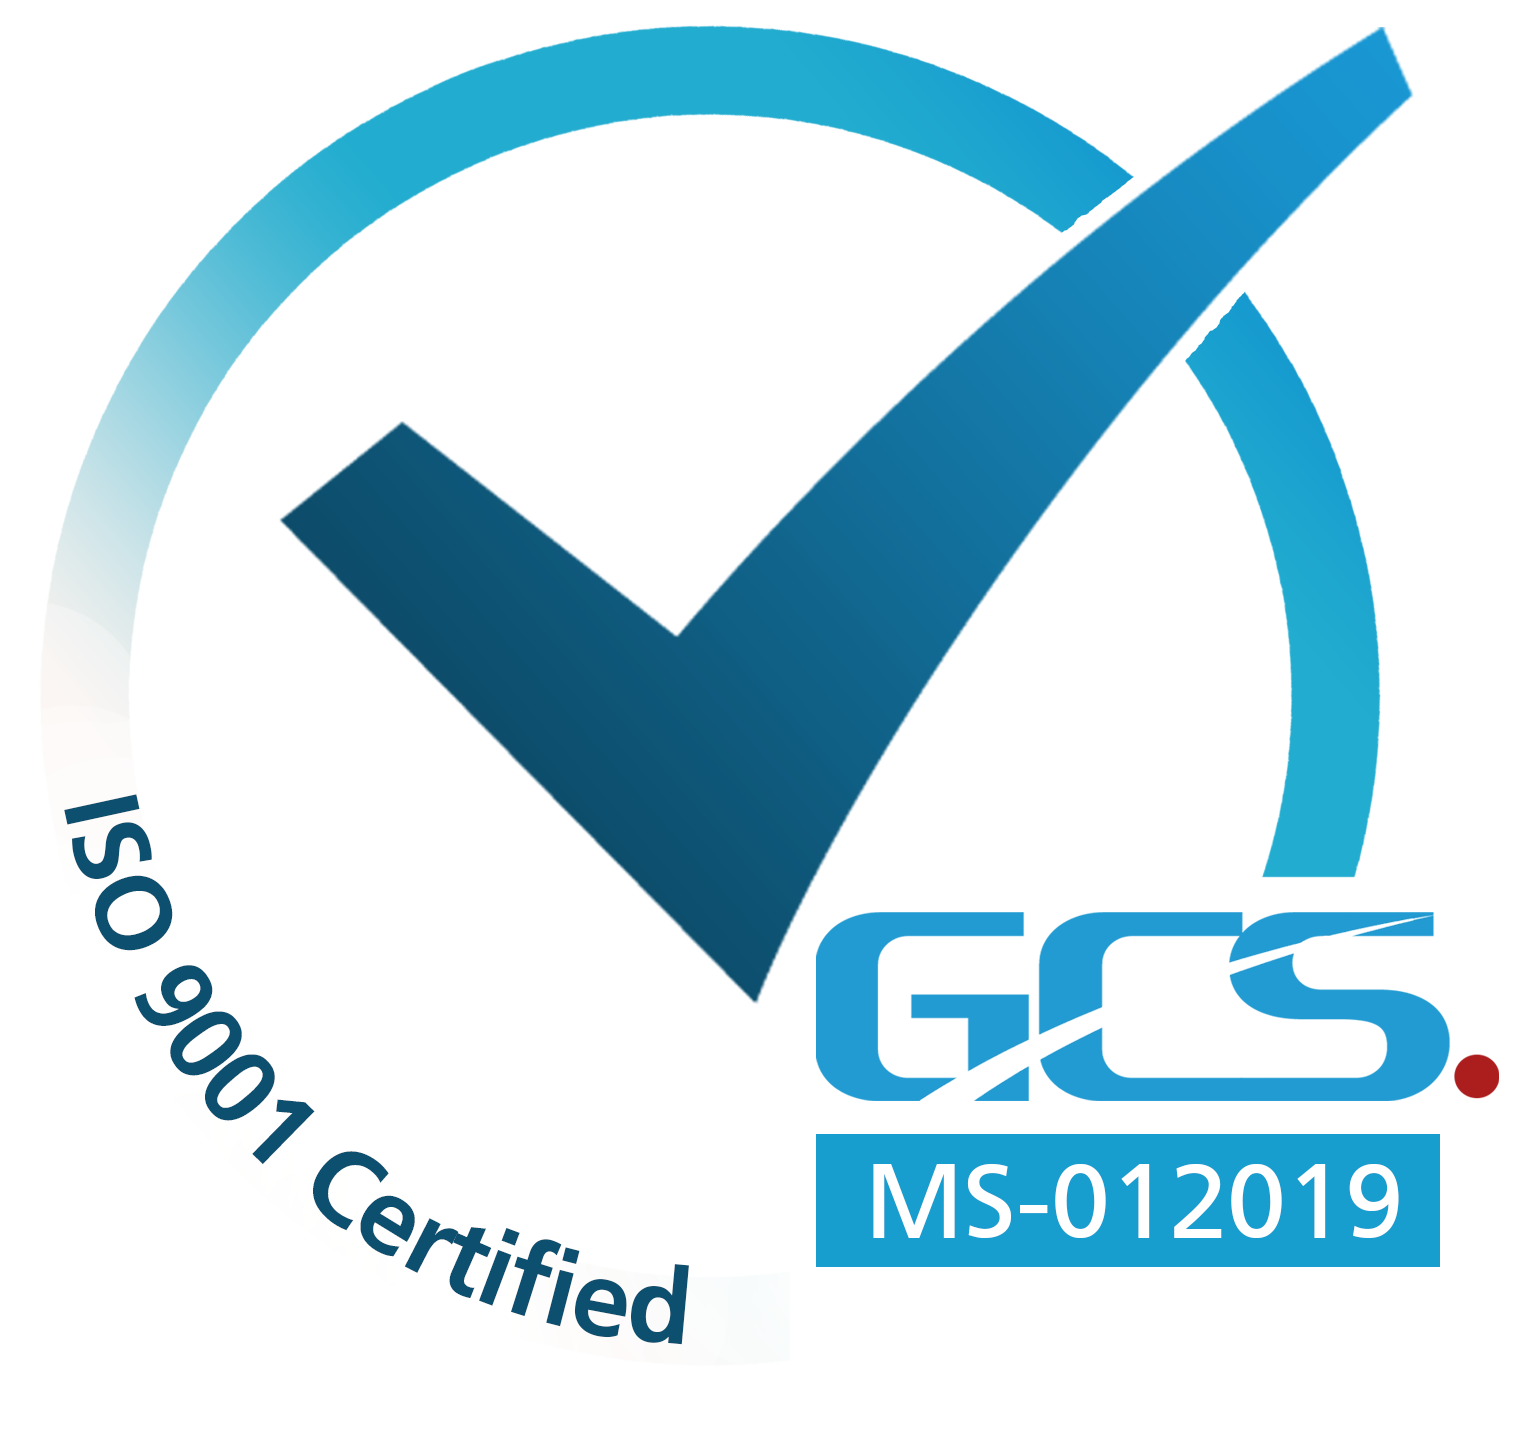 the-hardware-depot-iso-9001-certification-mark.png